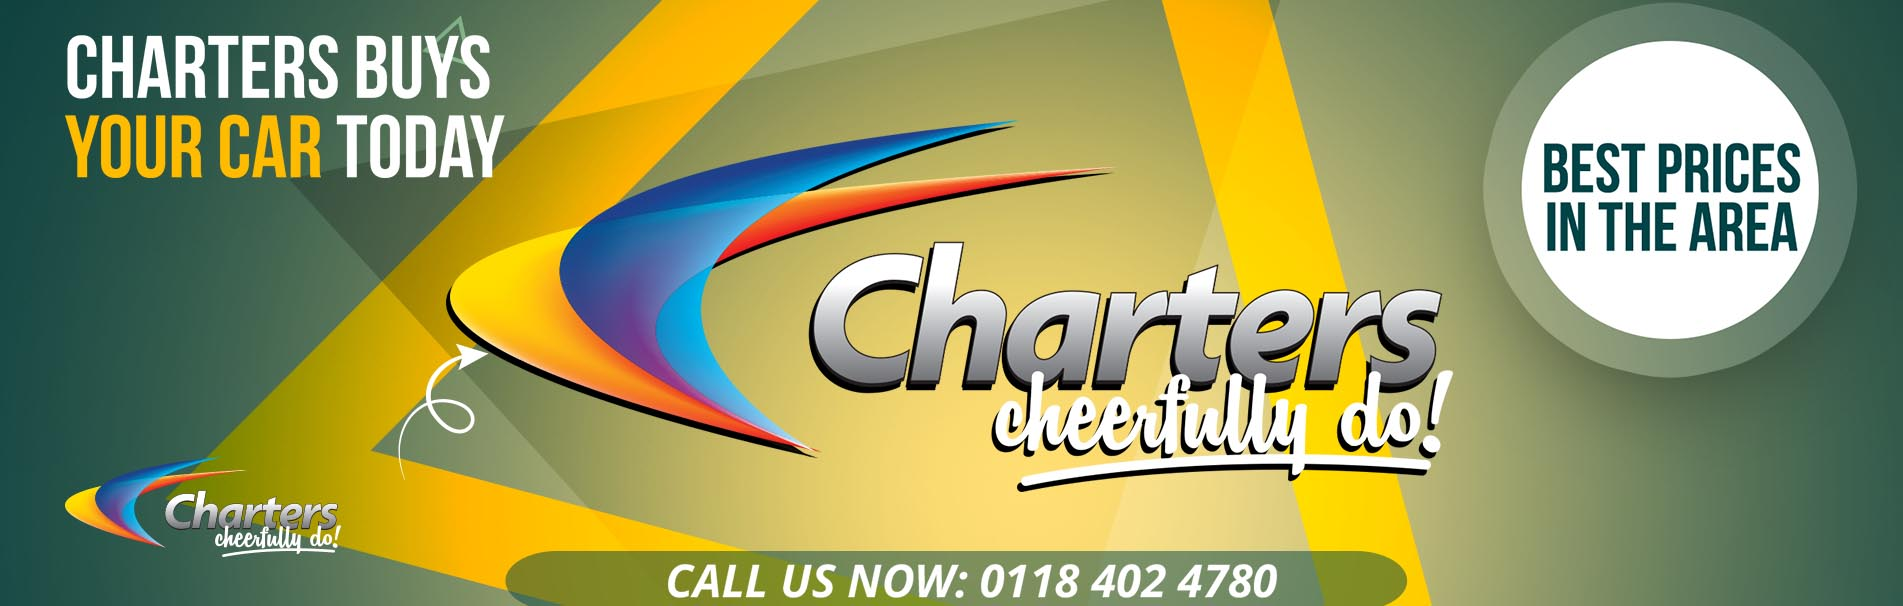 charters-reading-buys-your-car-r-sli